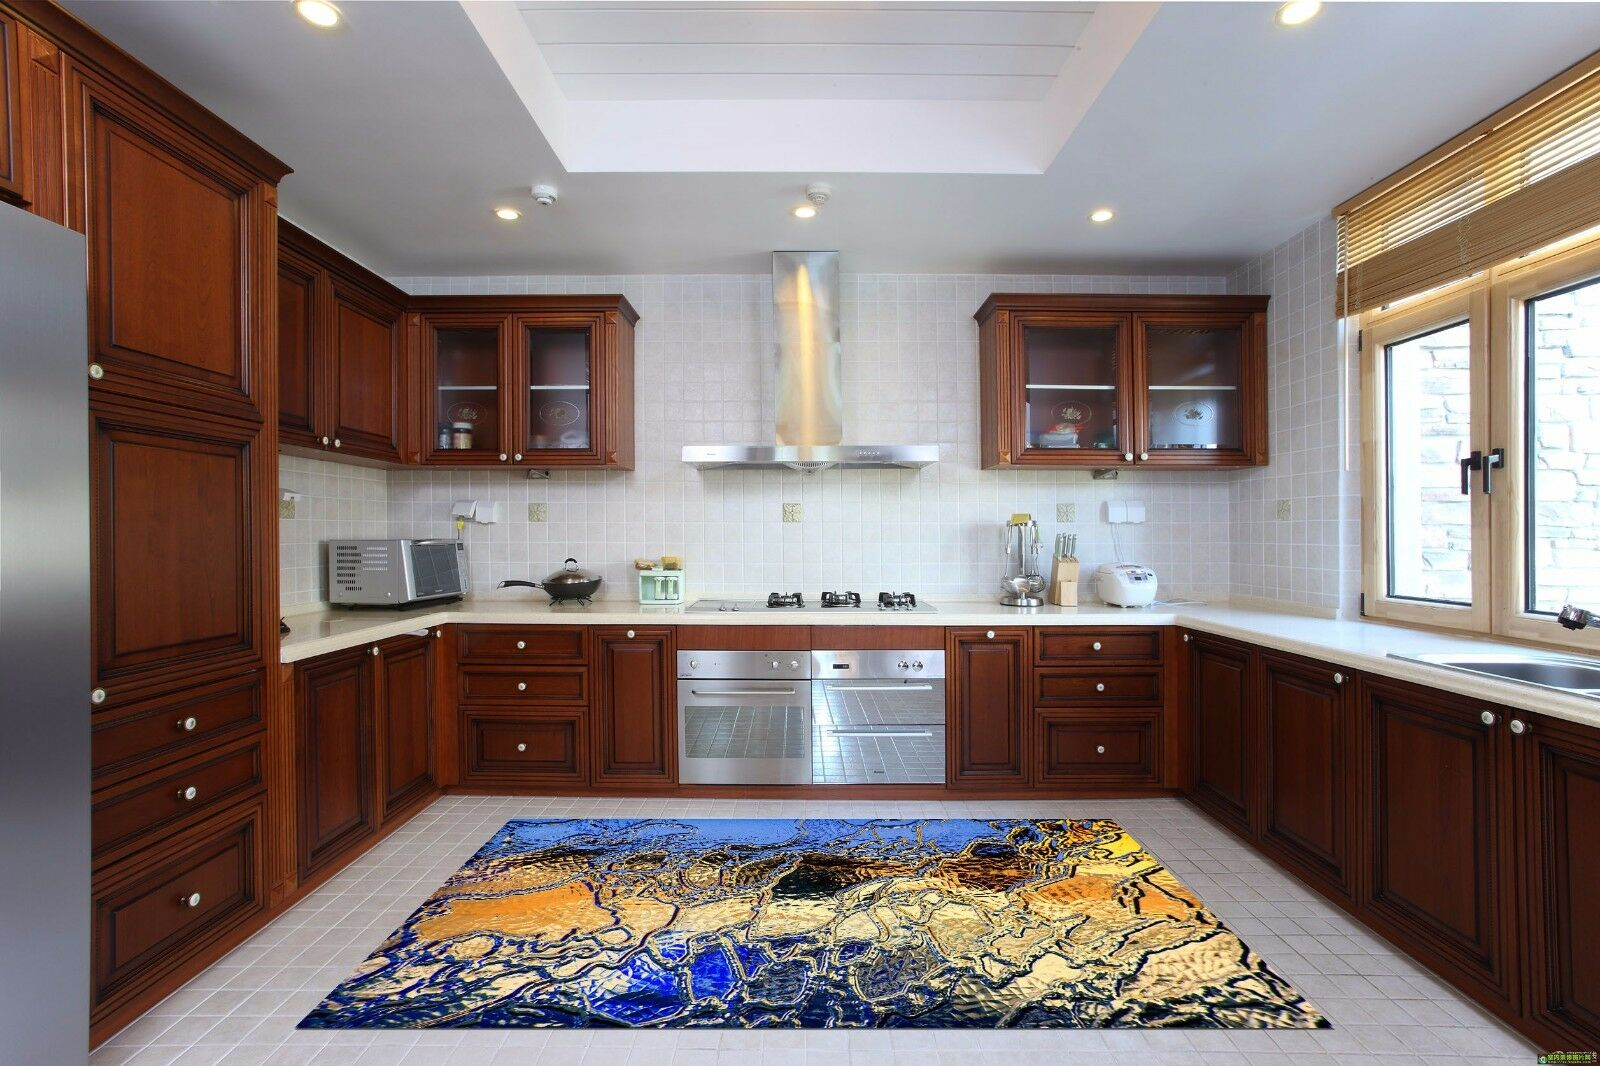 3D Blau Ripple 70 Kitchen Mat Floor Murals Wall Print Wall Deco UK Carly